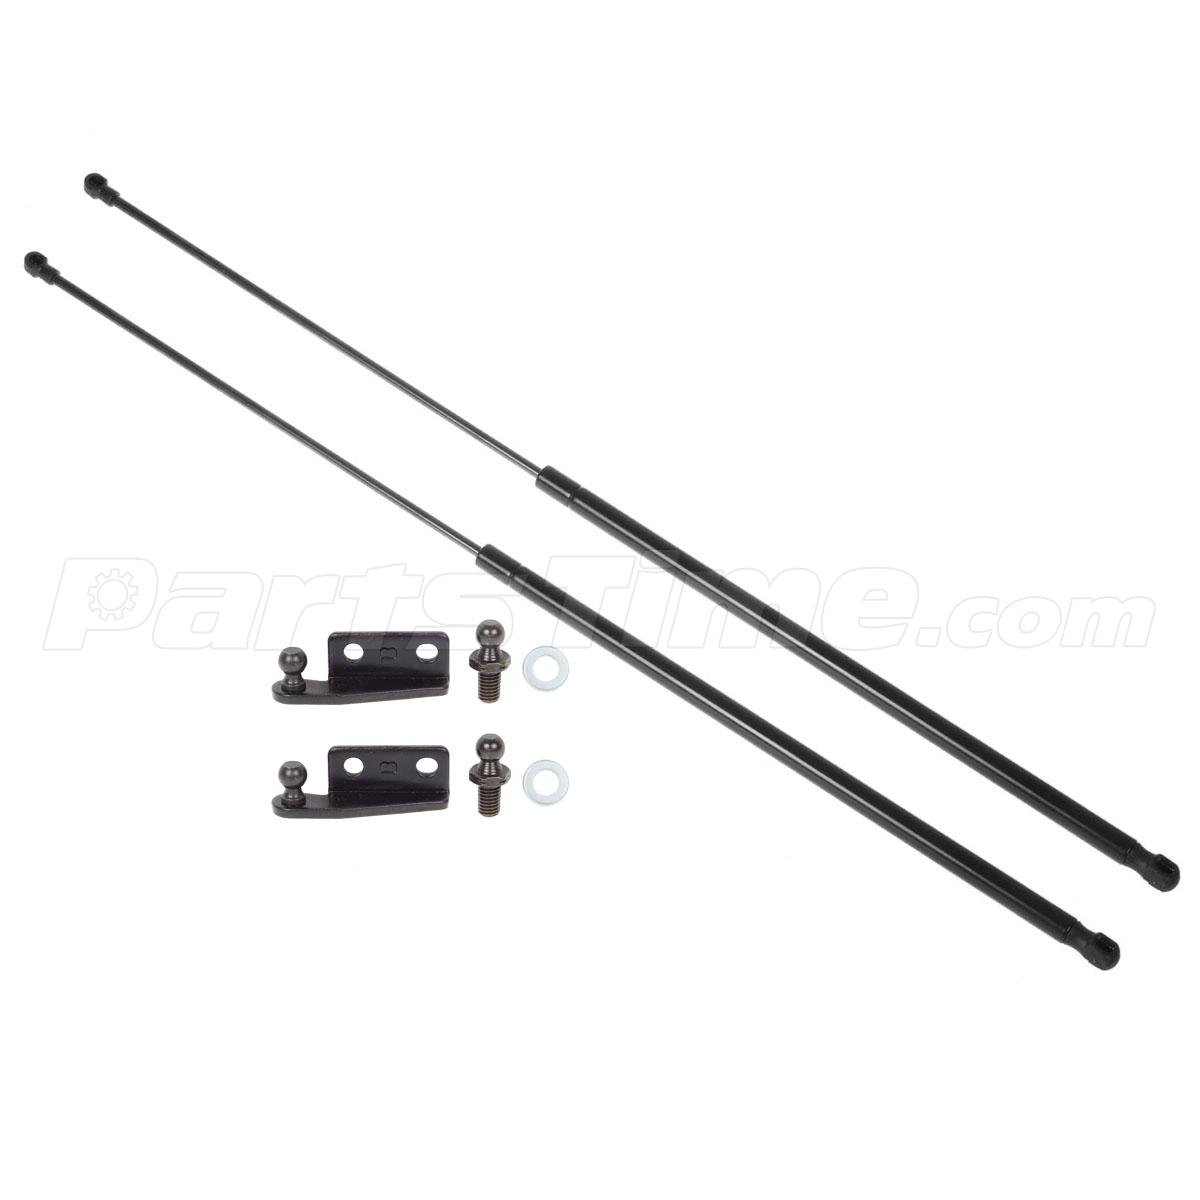 2 Rear Hatch Tailgate Gas Charged Lift Support For 95 99 Mitsubishi Eclipse